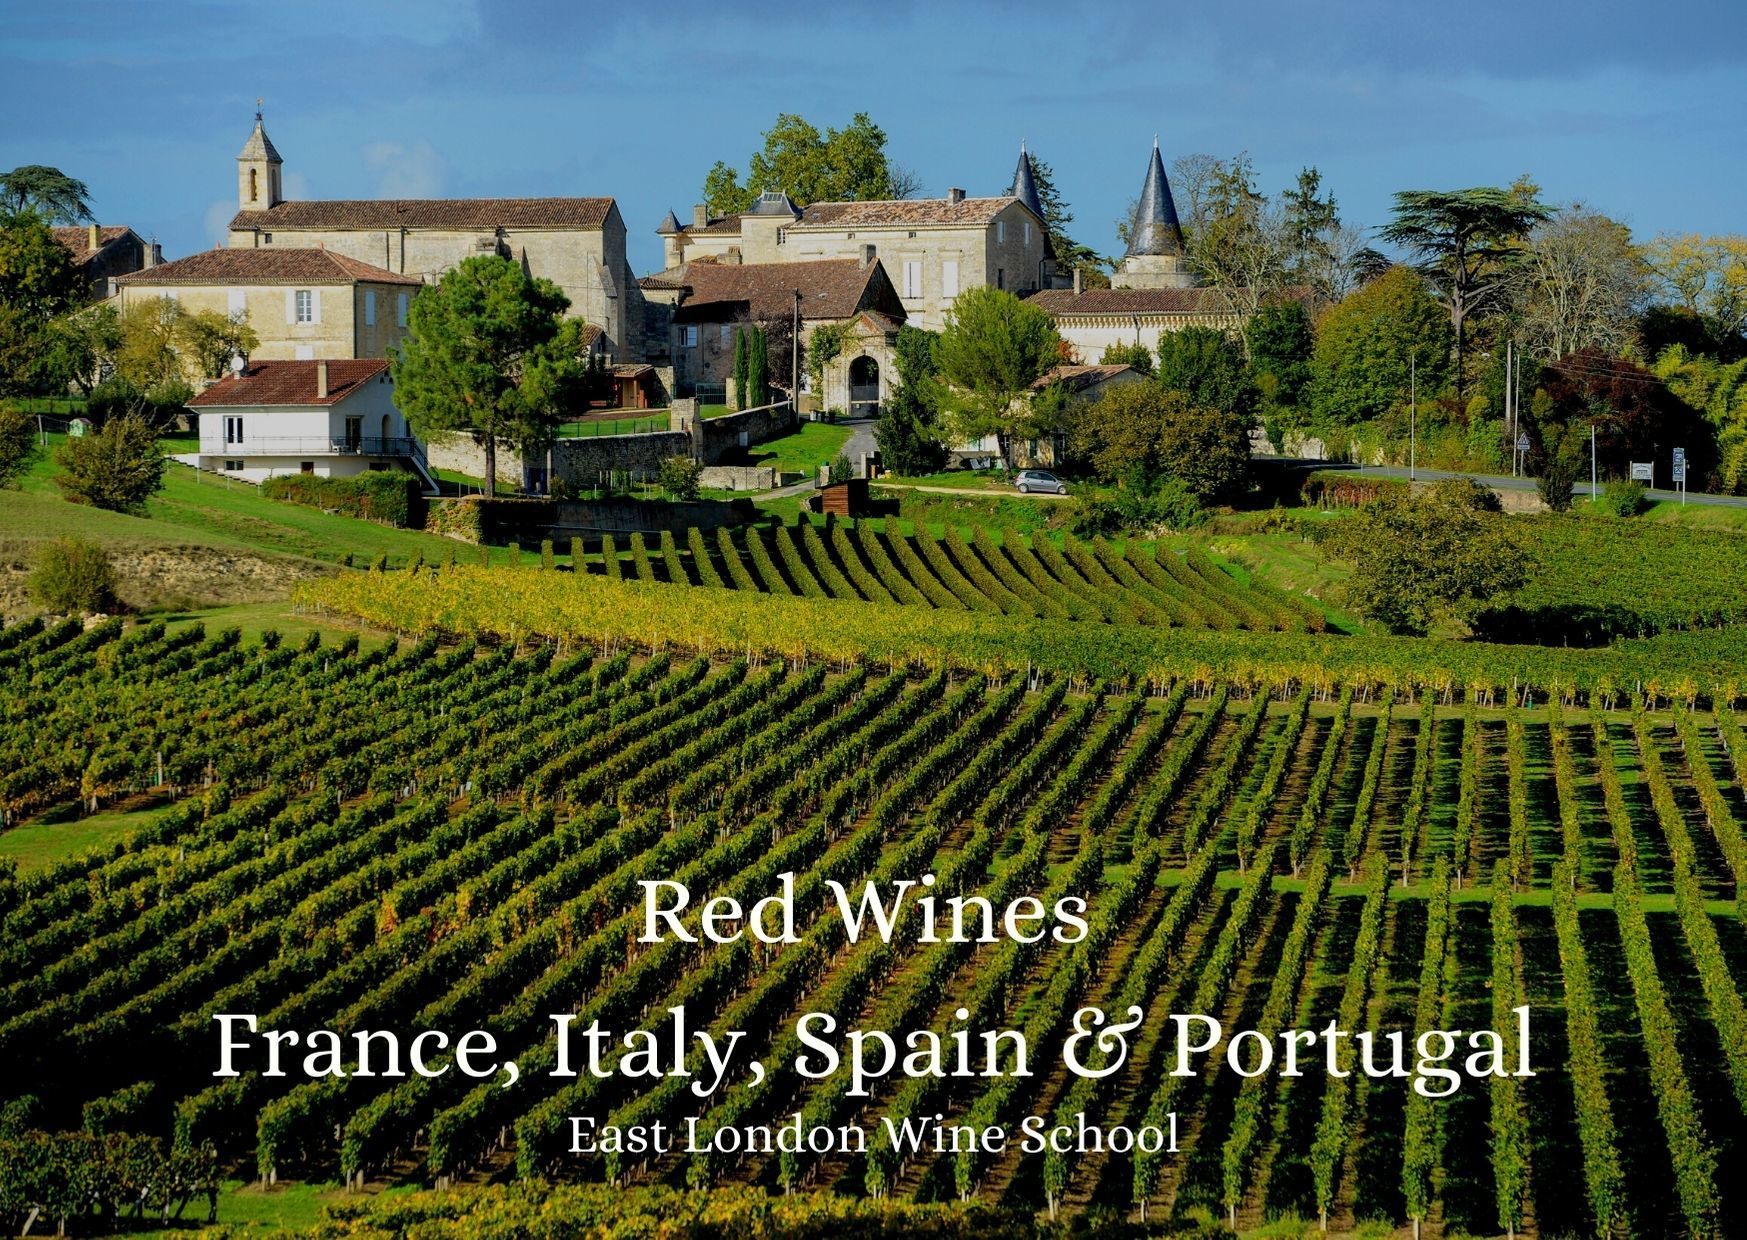 Intro to Red Wines from Italy, France, Spain and Portugal